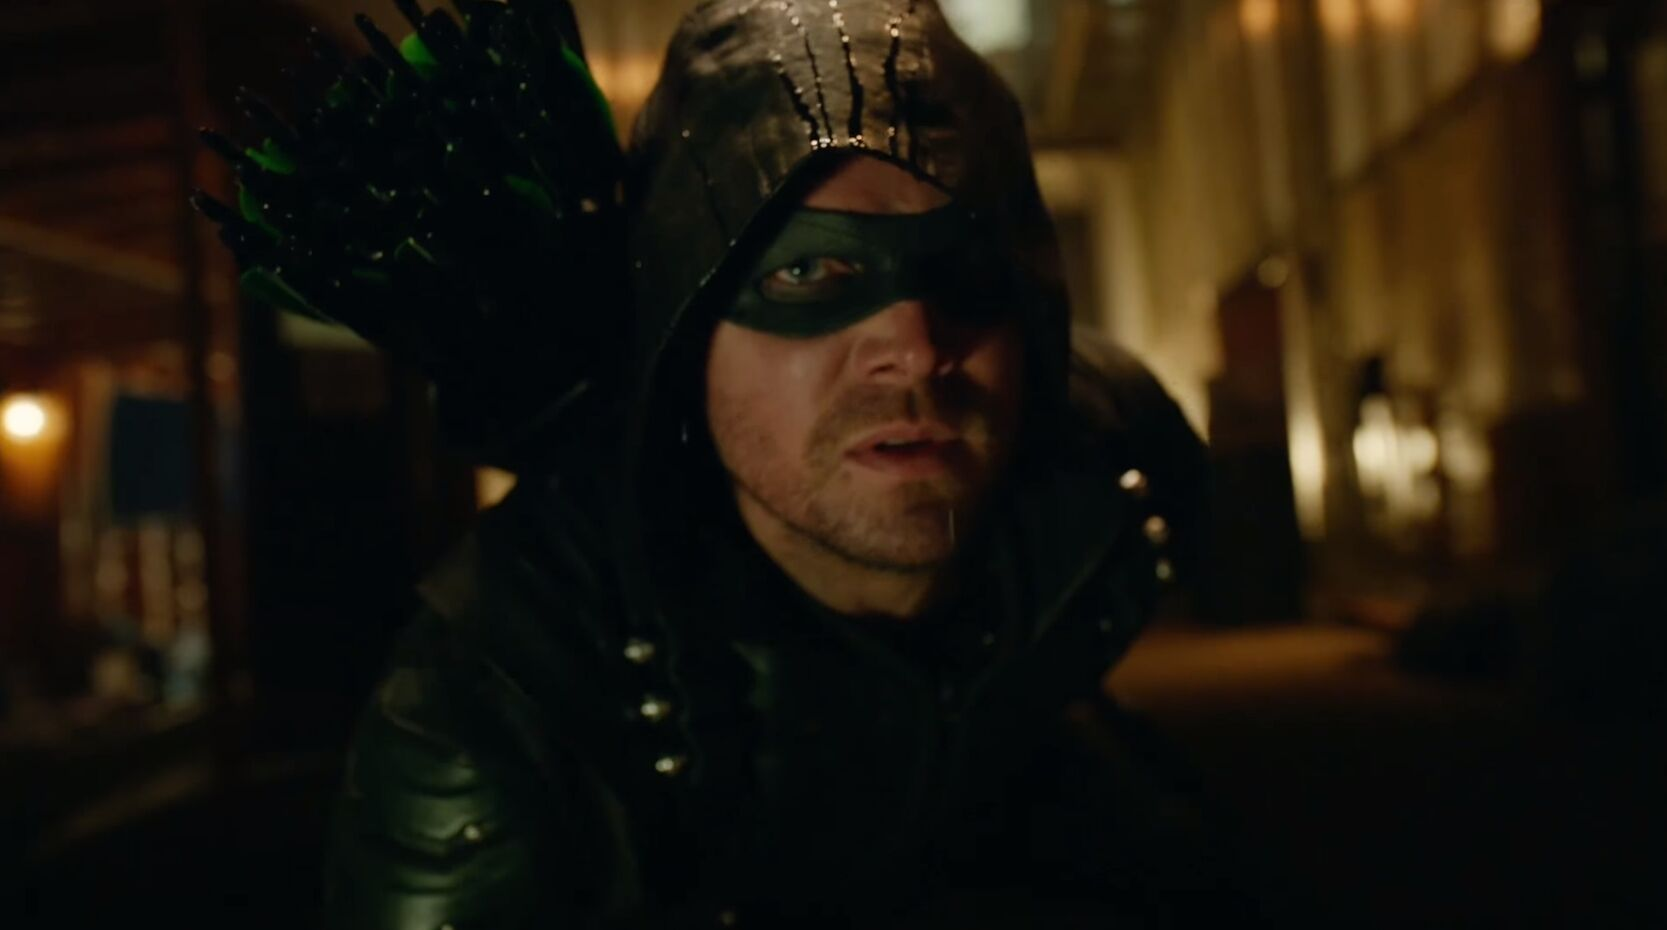 Watch Arrow online - Now streaming on demand